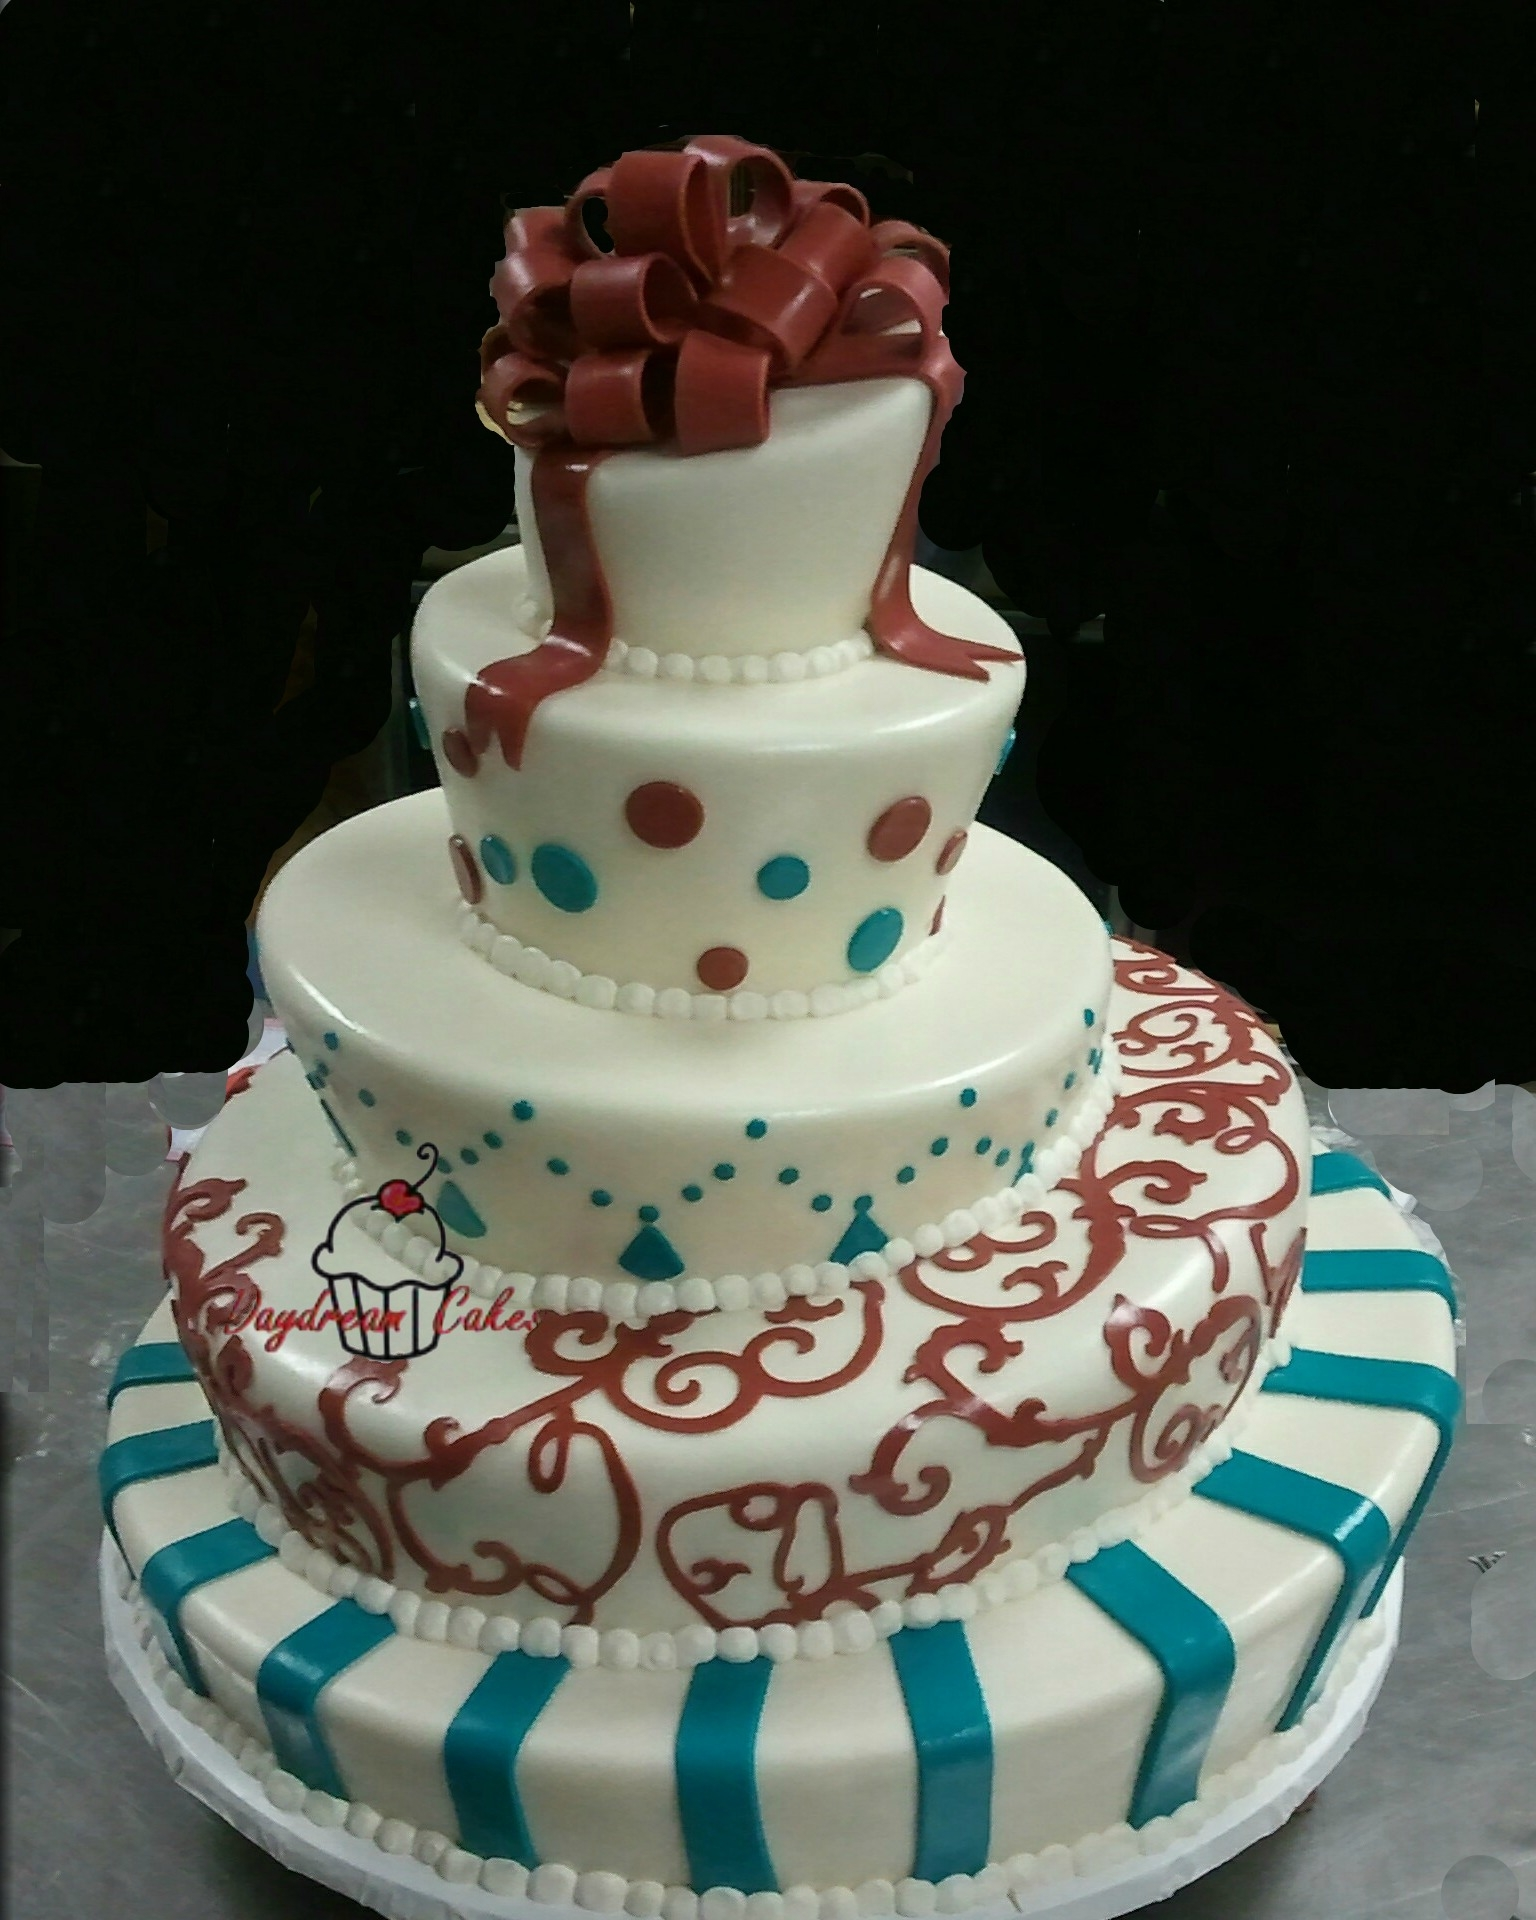 Topsy Turvy Wedding Cake..Didn't get a good photo, the bride will provide one later